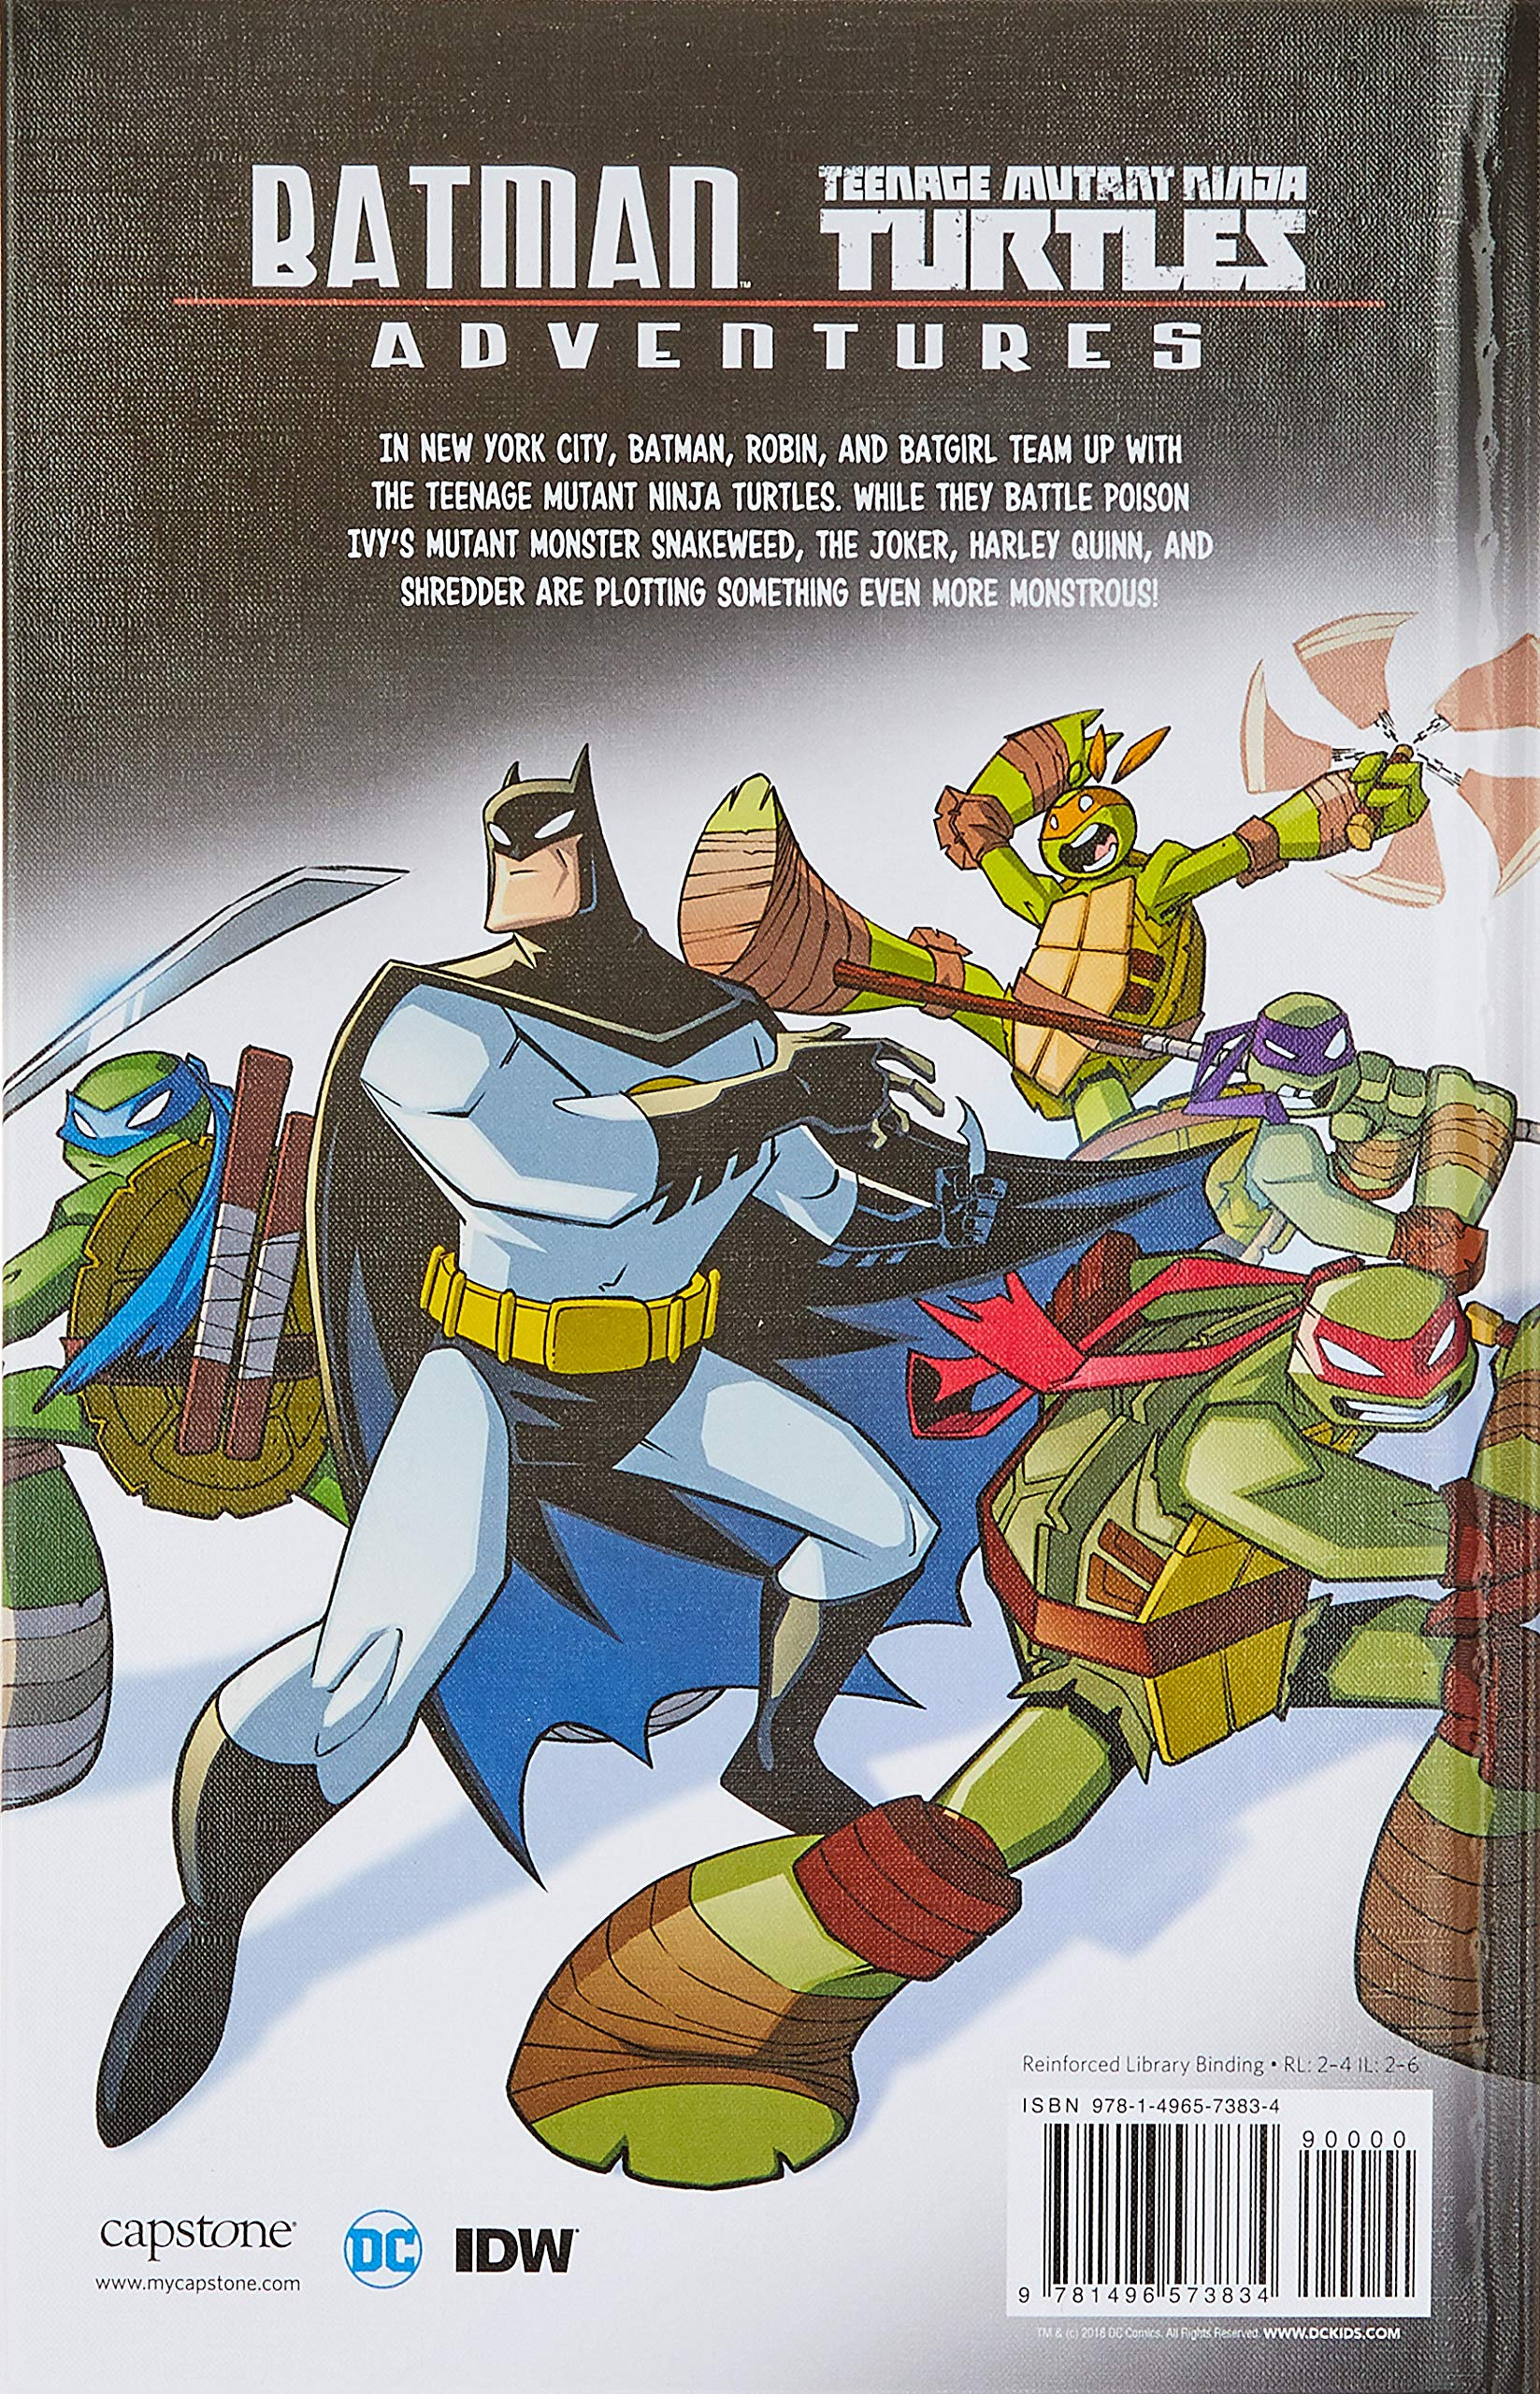 Batman/Teenage Mutant Ninja Turtles Adventures: Amazon.es ...